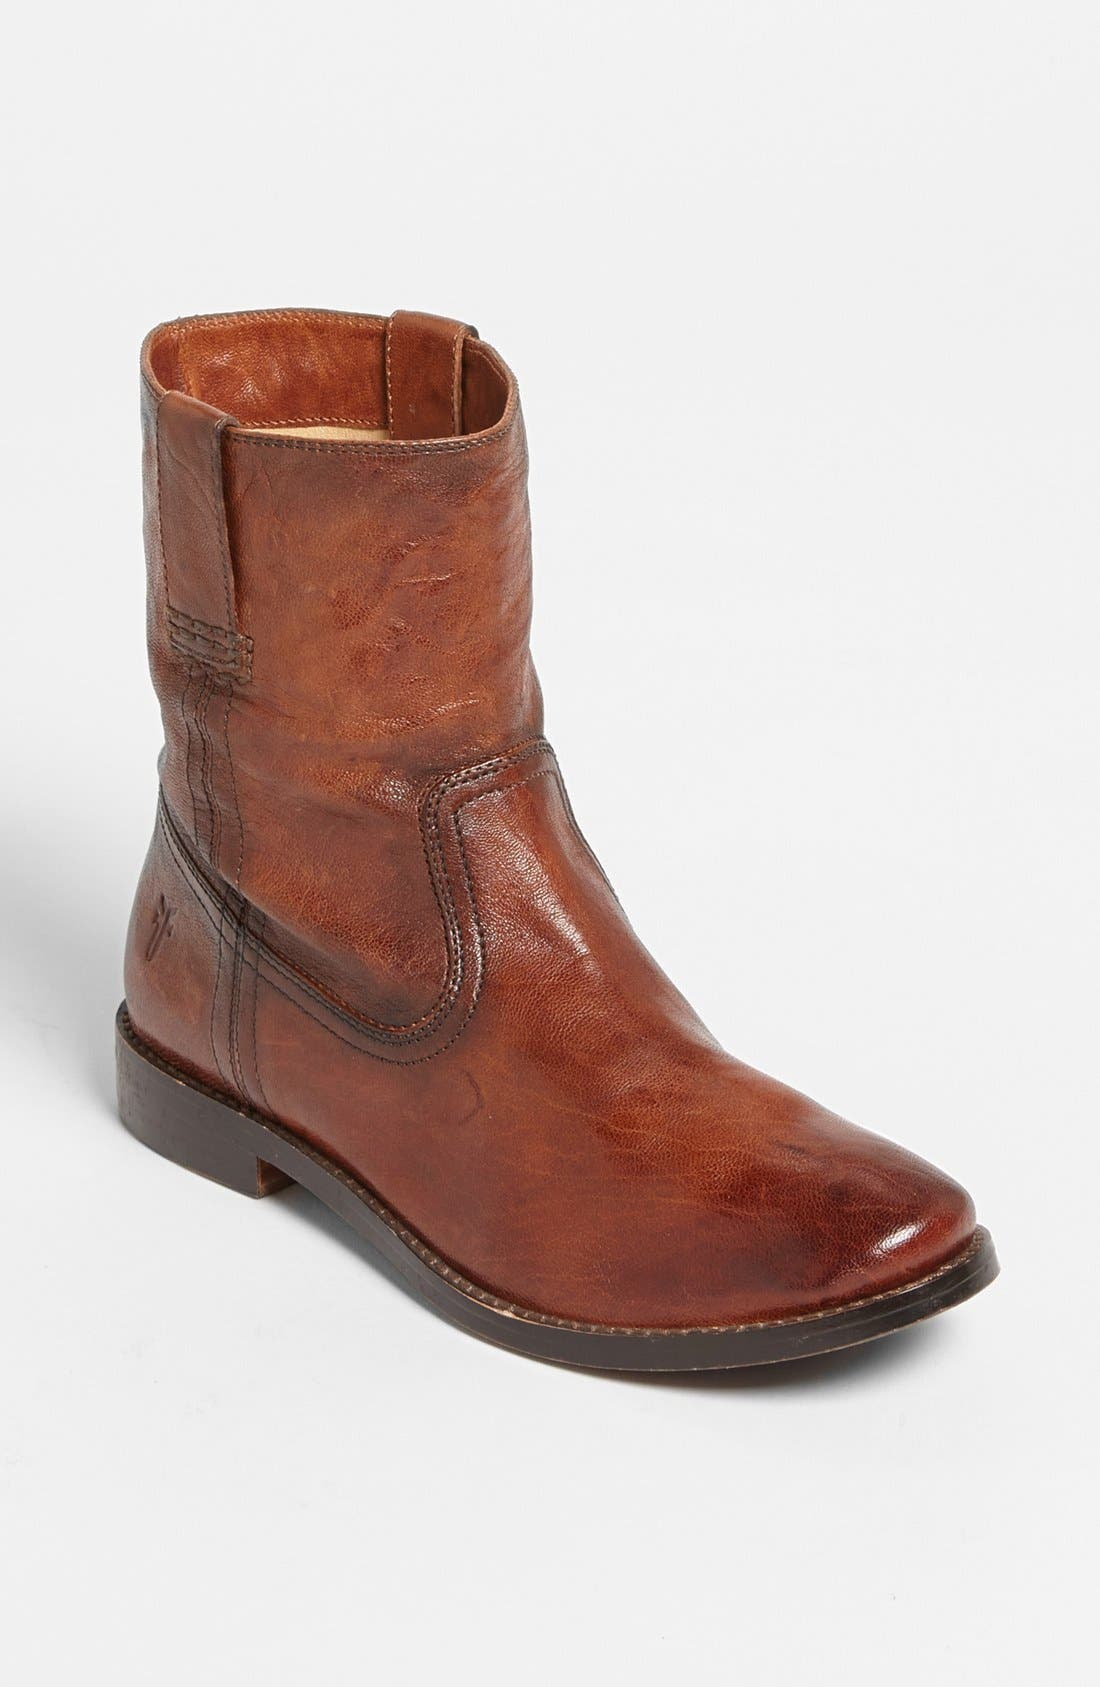 Alternate Image 1 Selected - Frye 'Anna - Shortie' Leather Boot (Women)